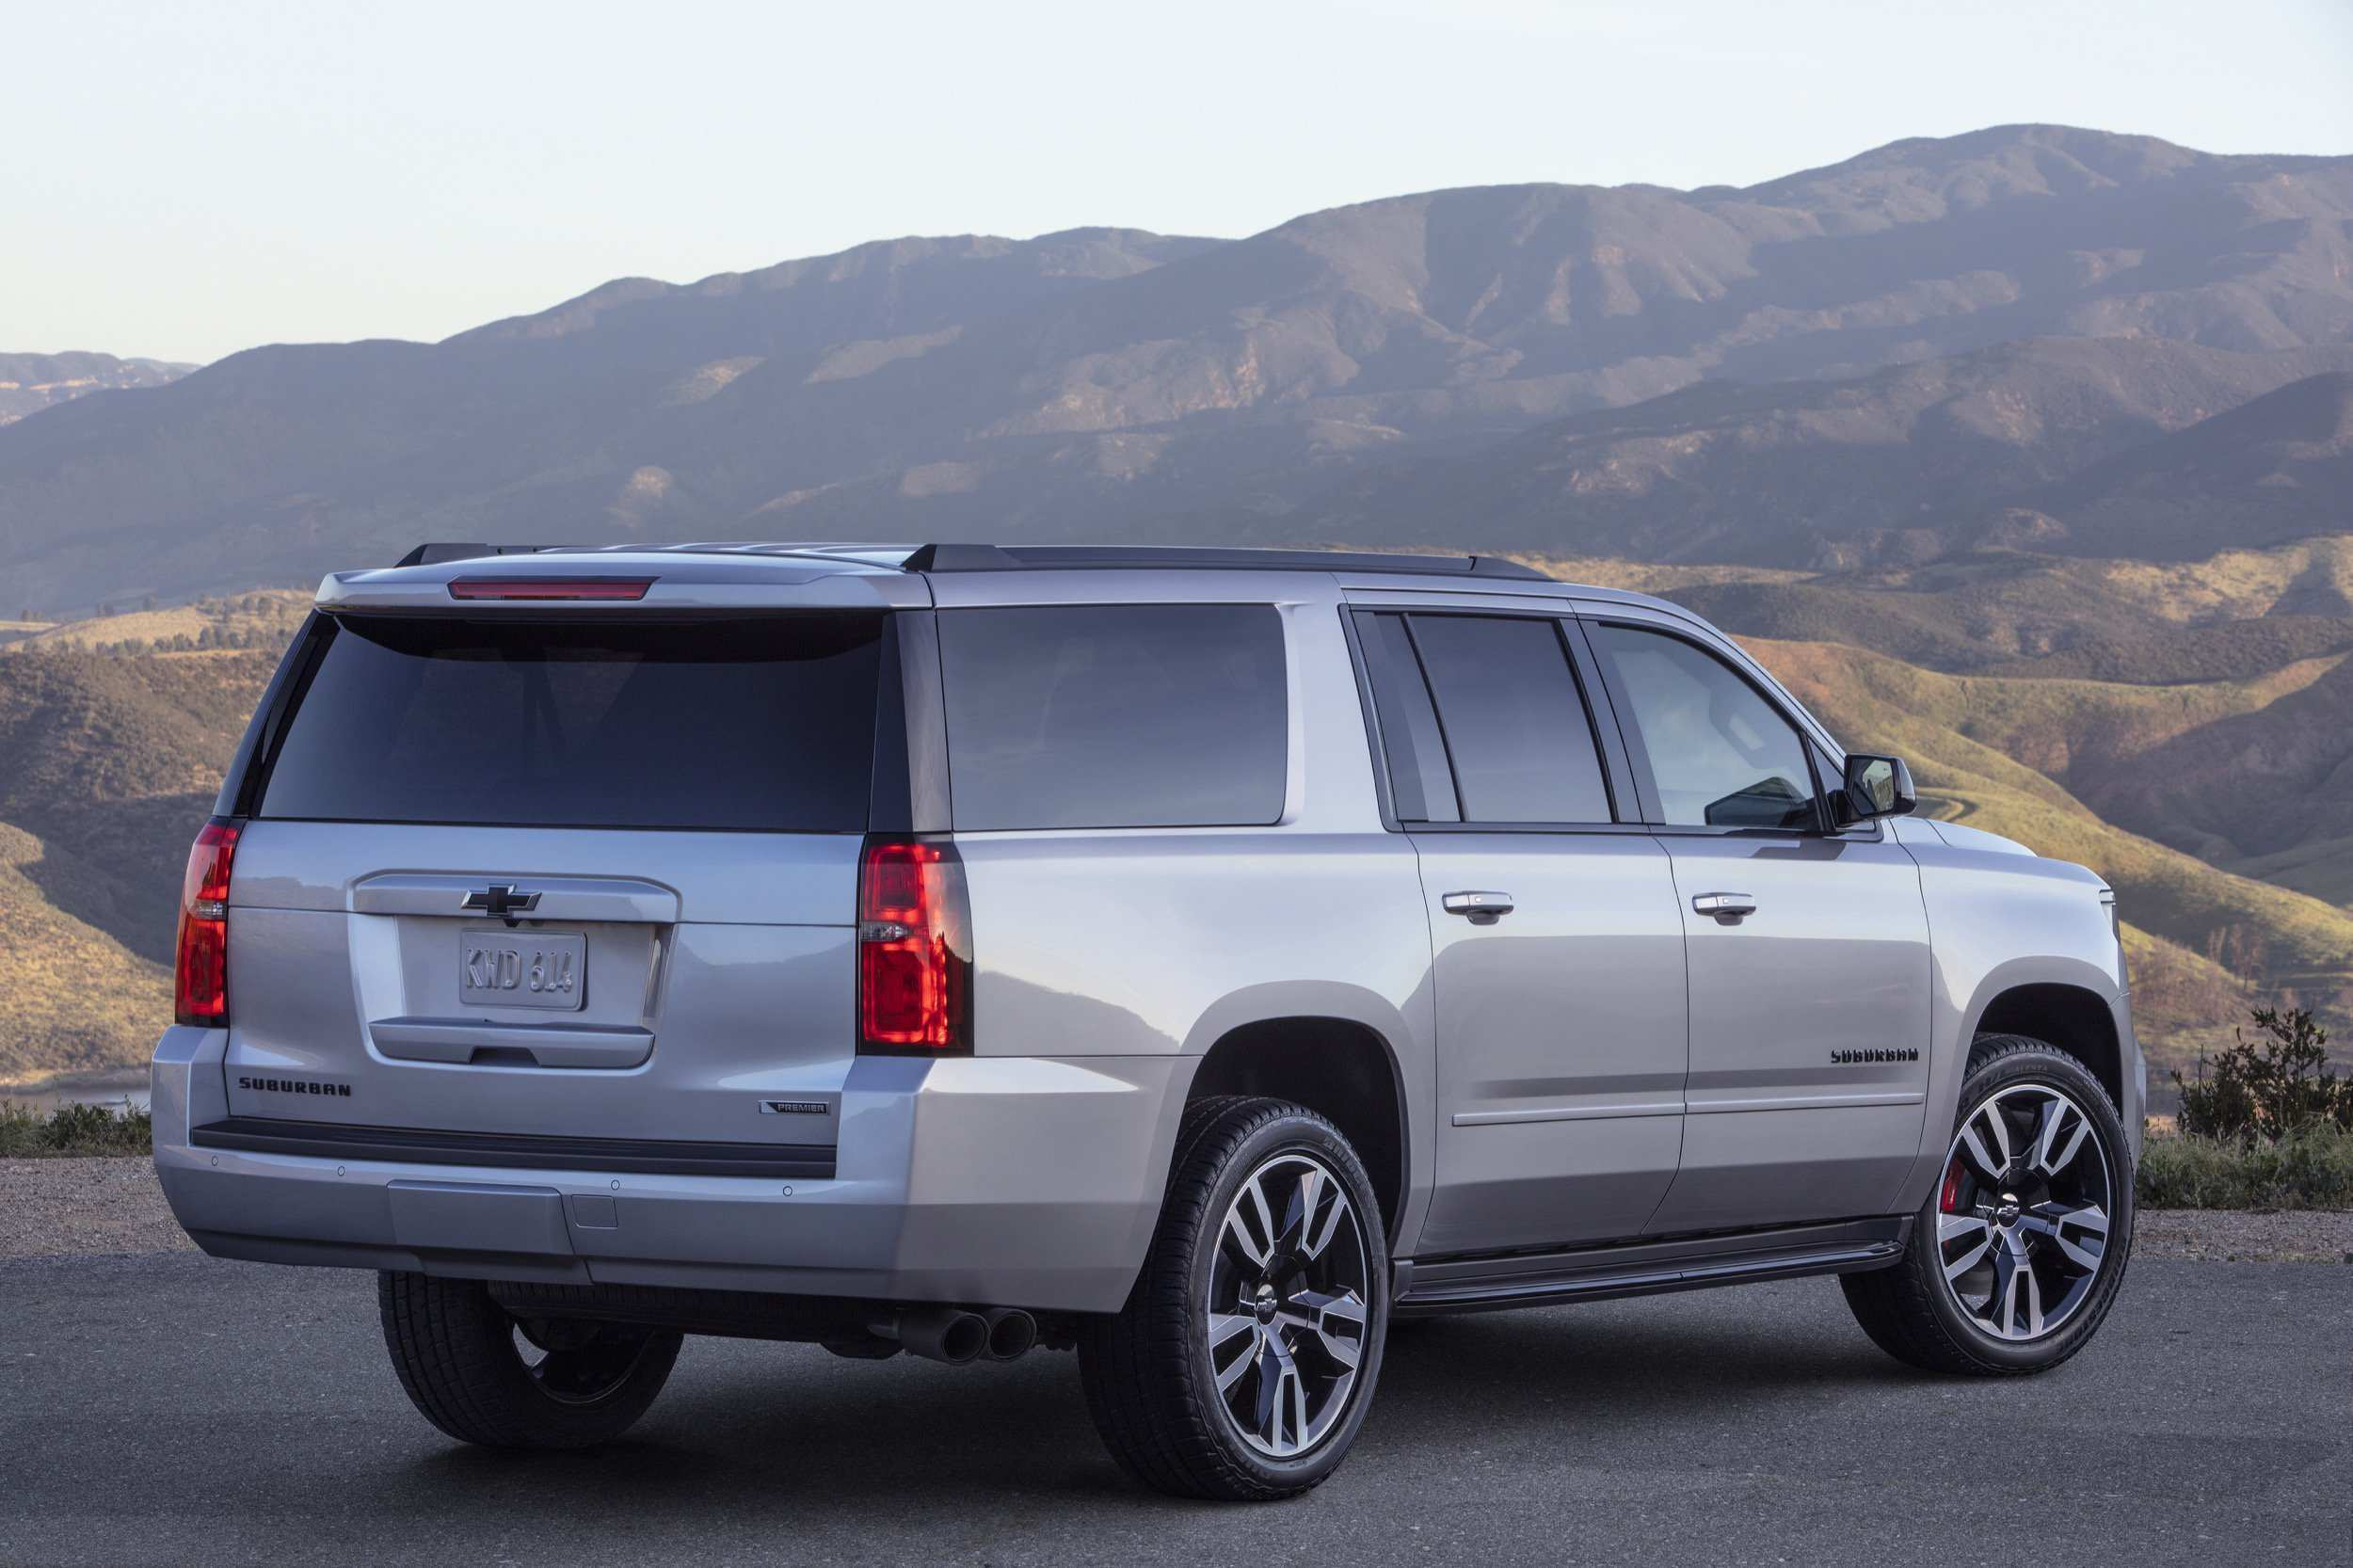 68 Gallery of 2019 Chevrolet Suburban Images for 2019 Chevrolet Suburban